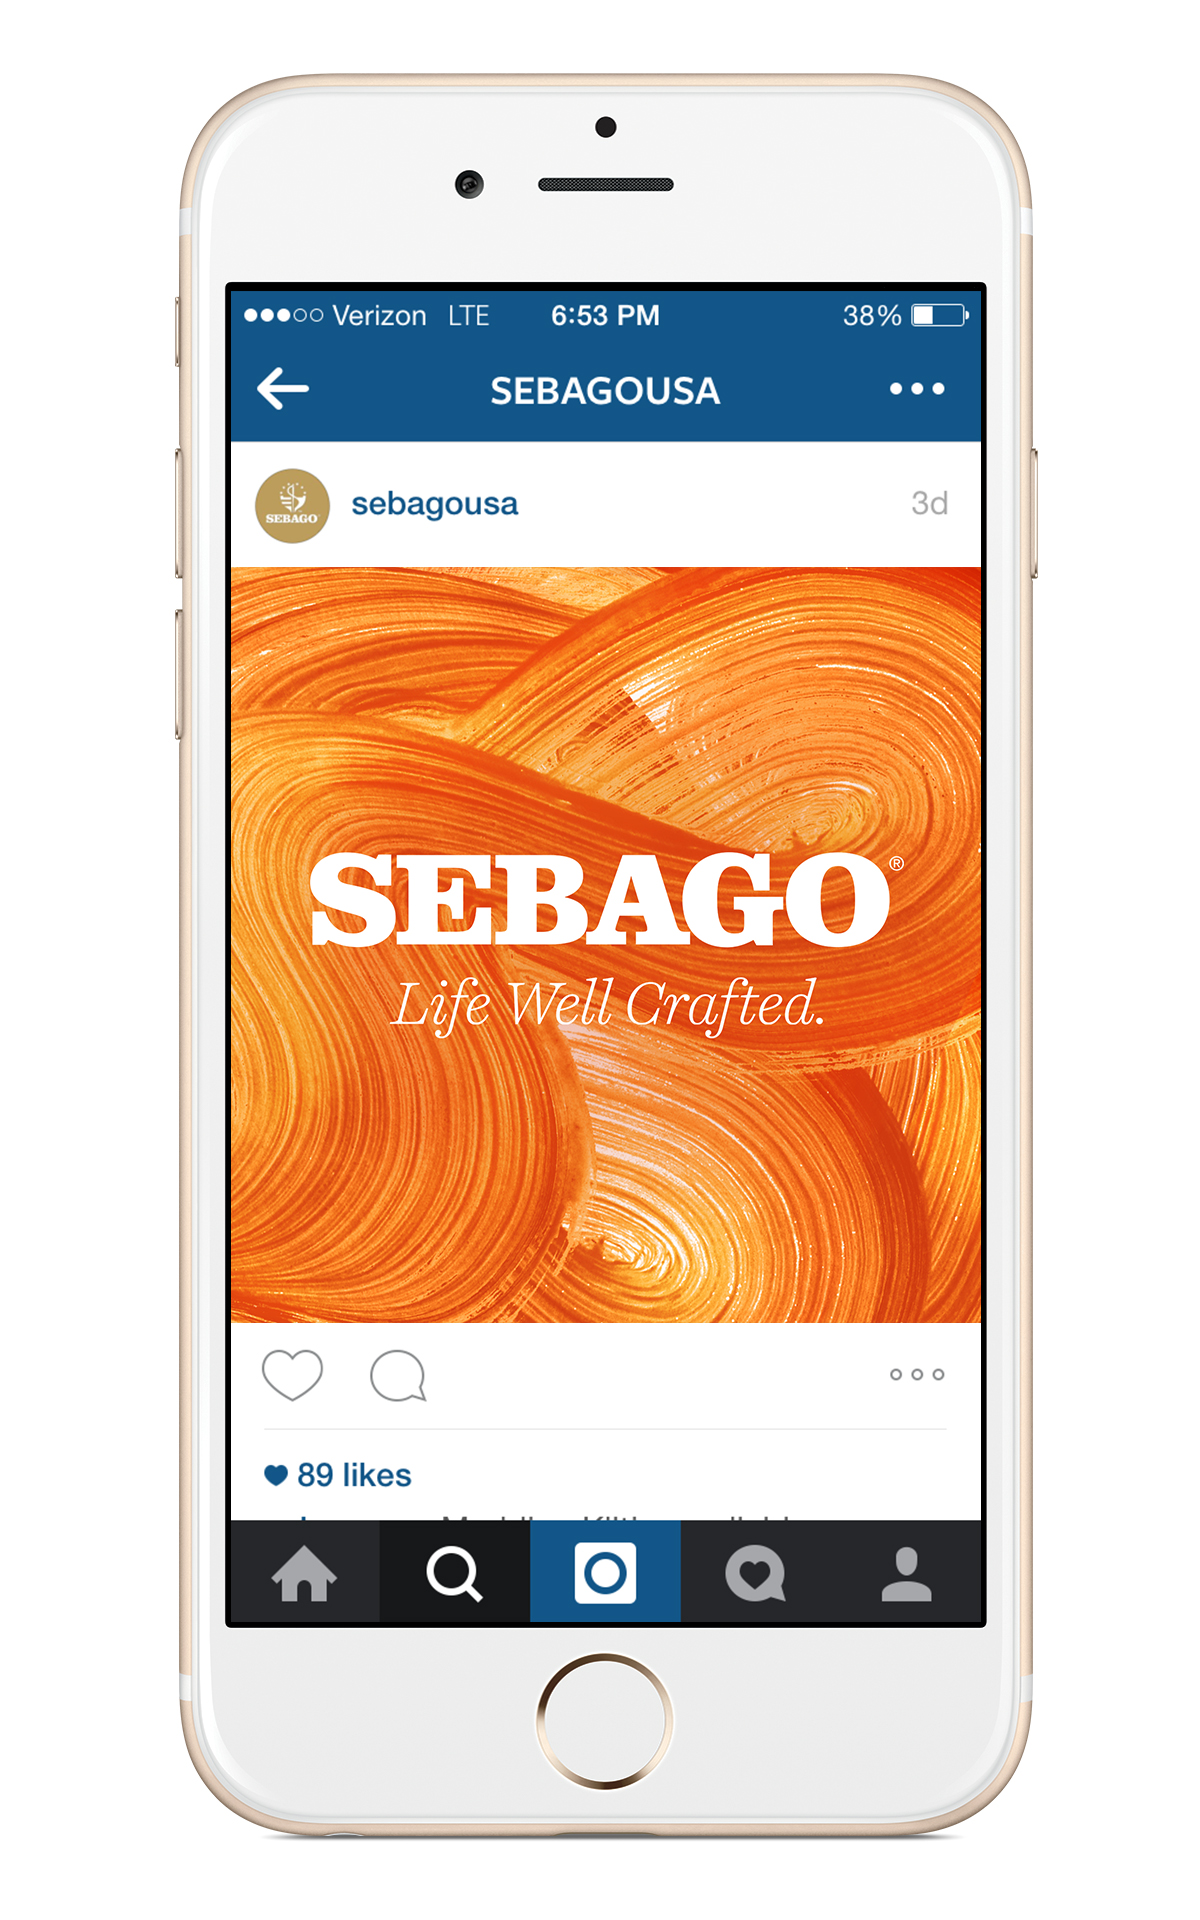 sebagoinstagram